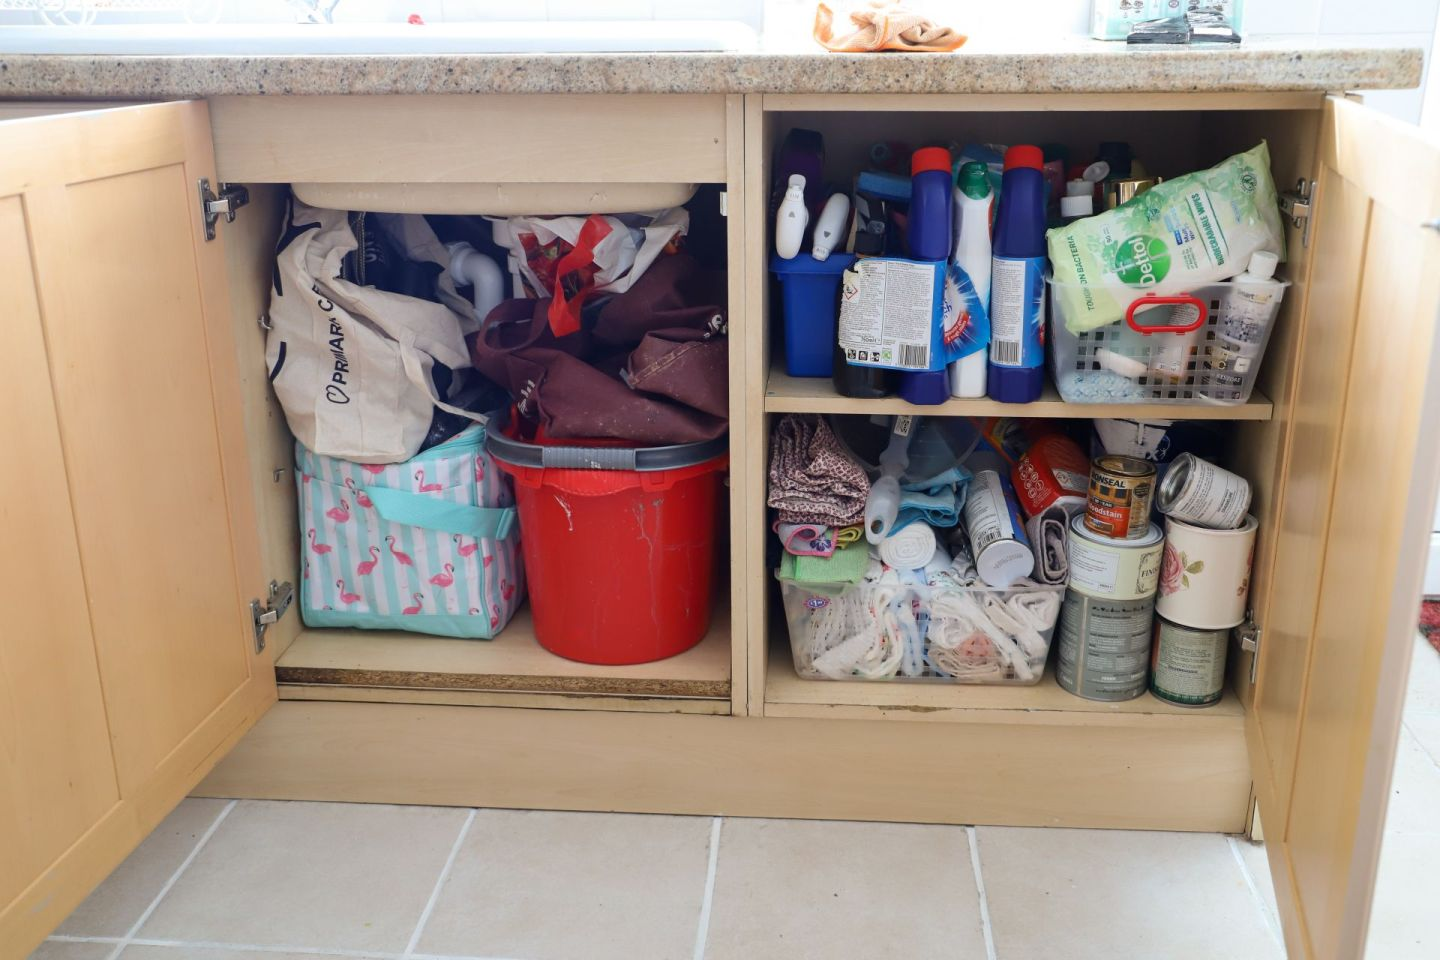 How To Organise Your Kitchen Cabinets And Make More Space